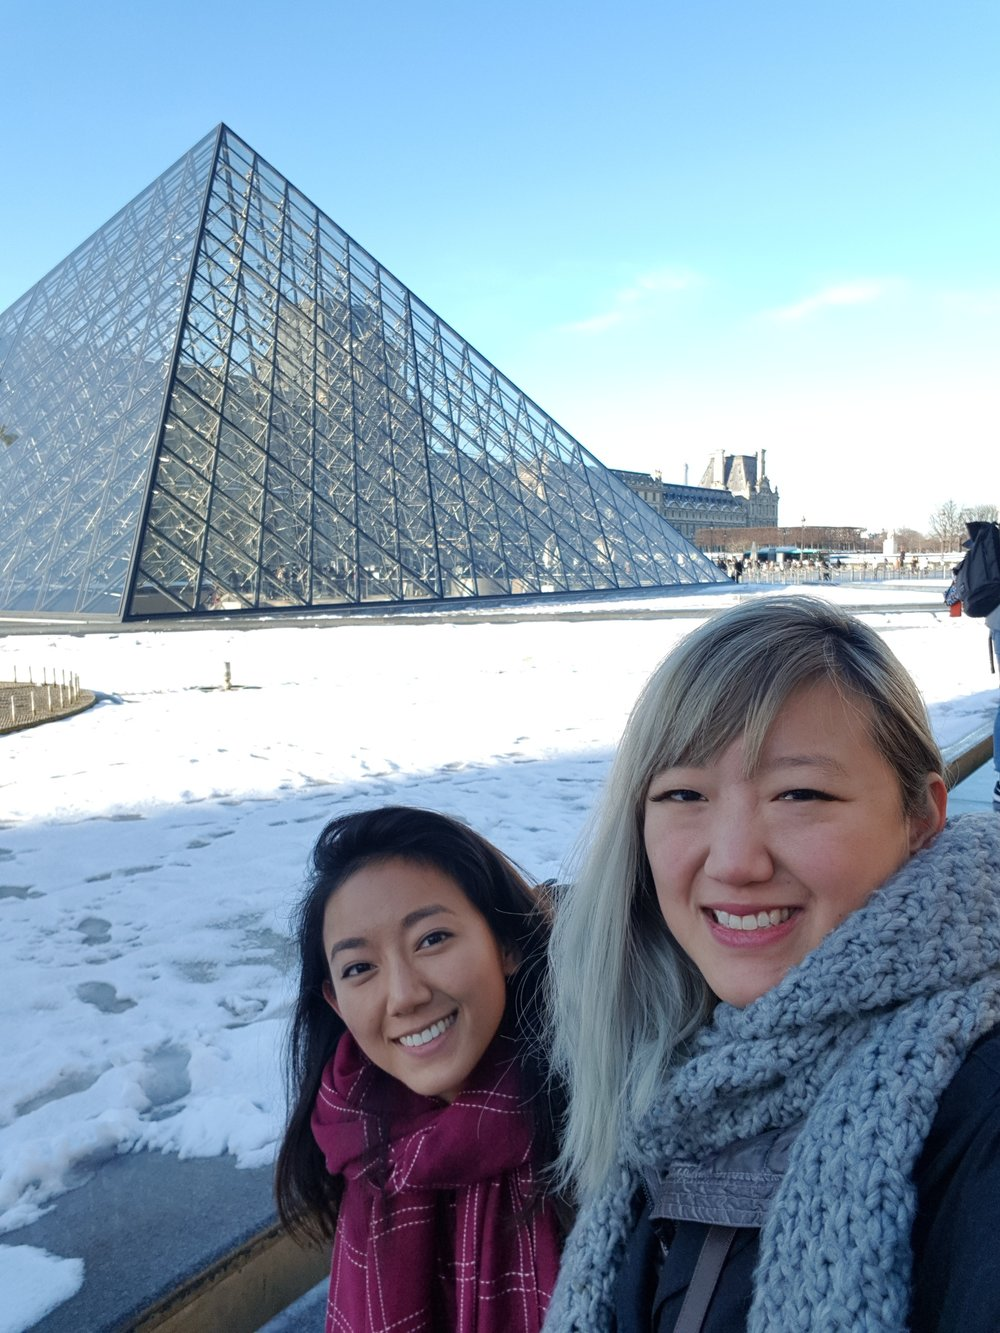 In front of the famous I.M. Pei-rymid!